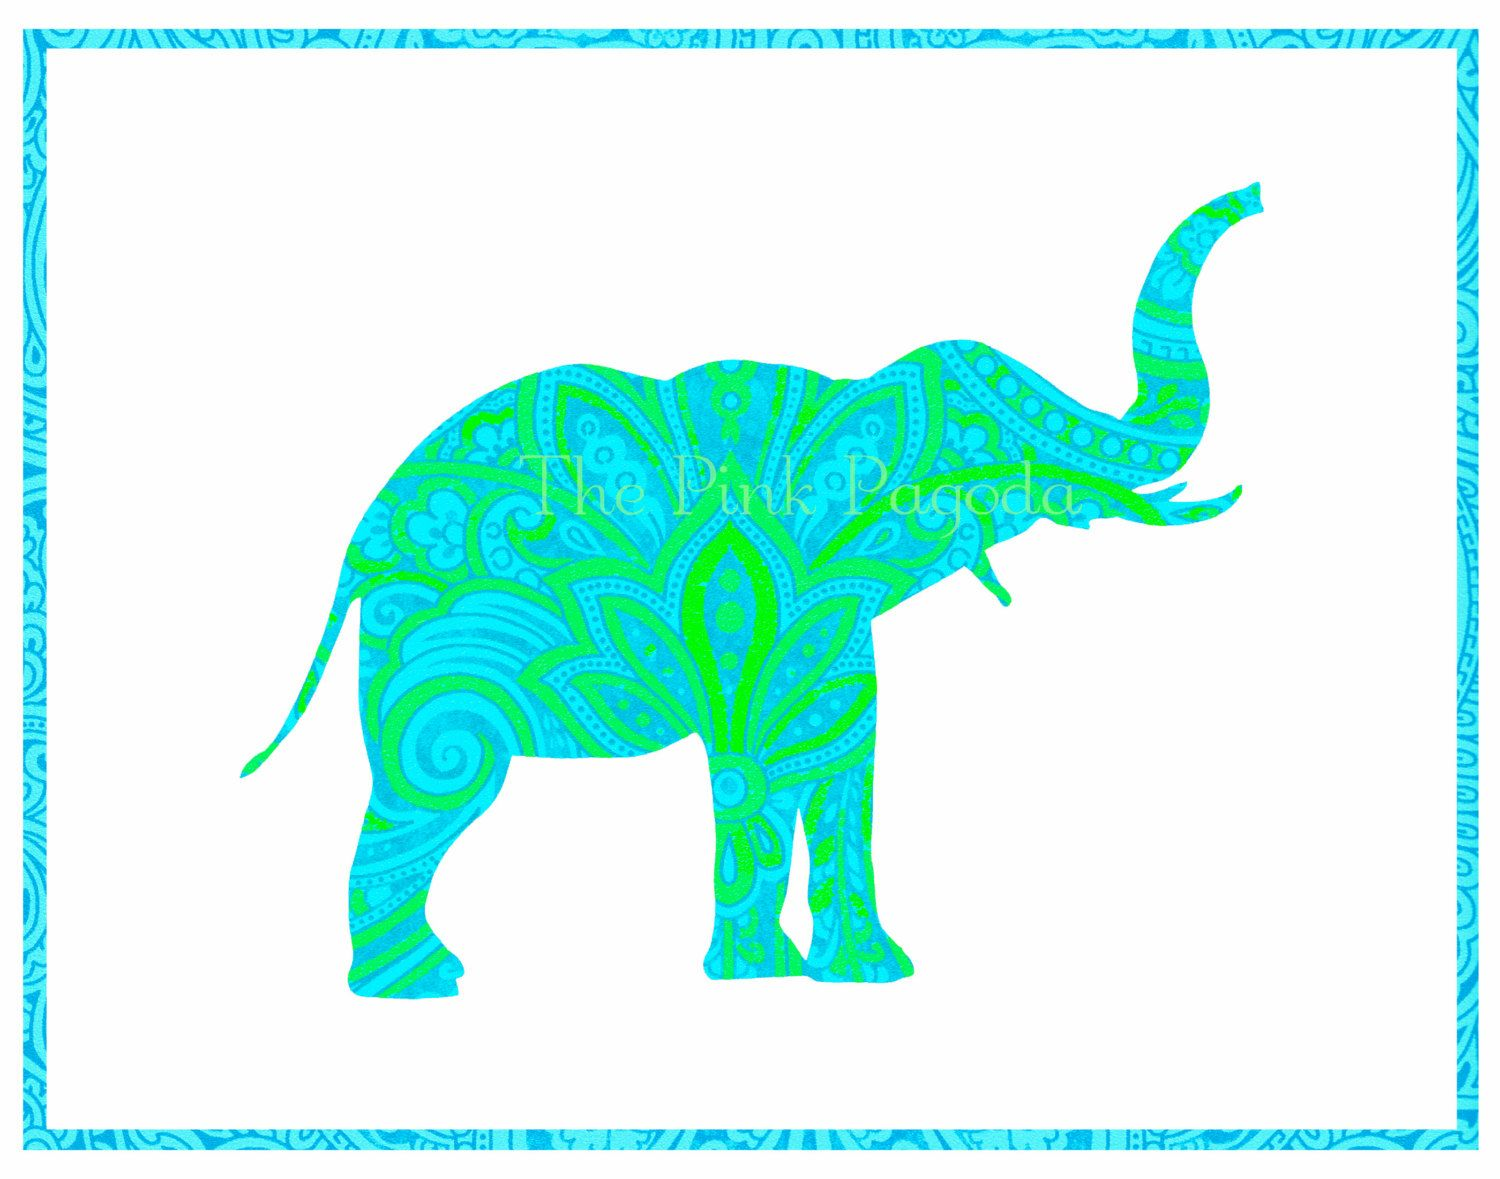 elephant outline trunk up - Google Search | Animals ...